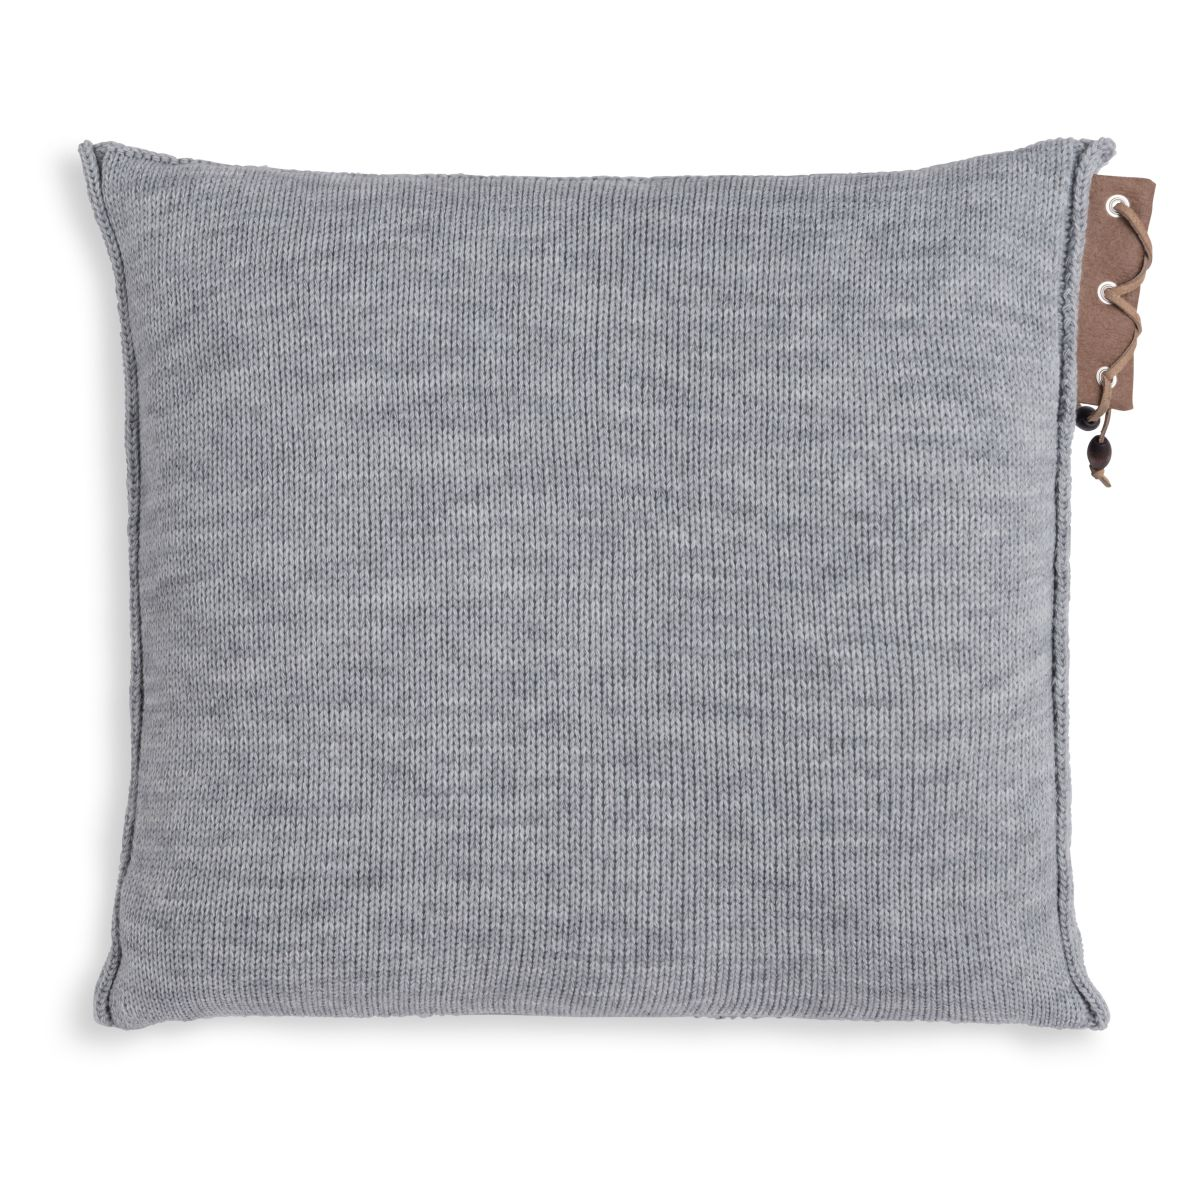 jay cushion light grey 50x50